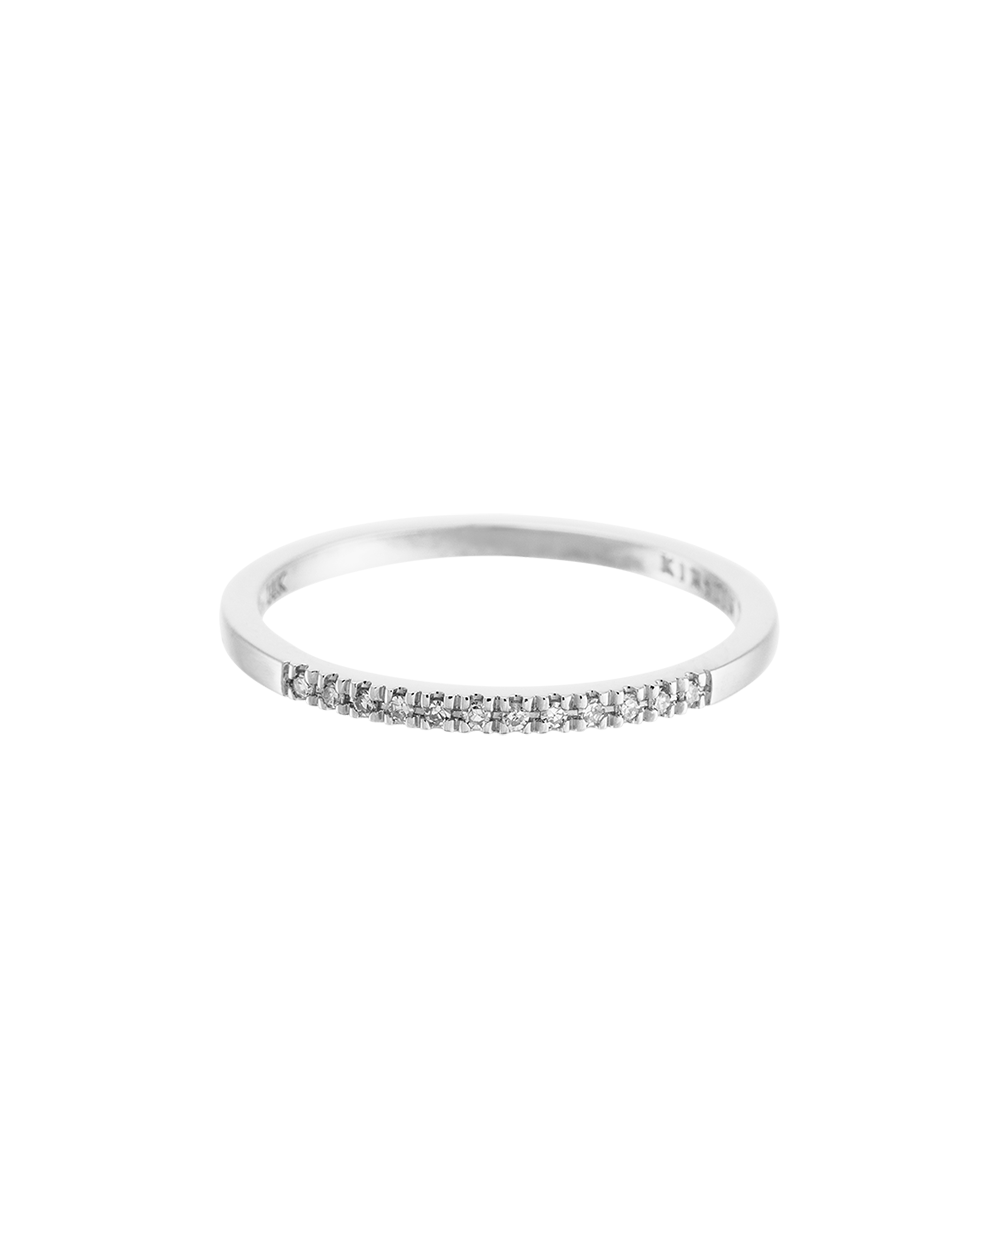 HALF DIAMOND ETERNITY RING (14K WHITE GOLD) Image 03